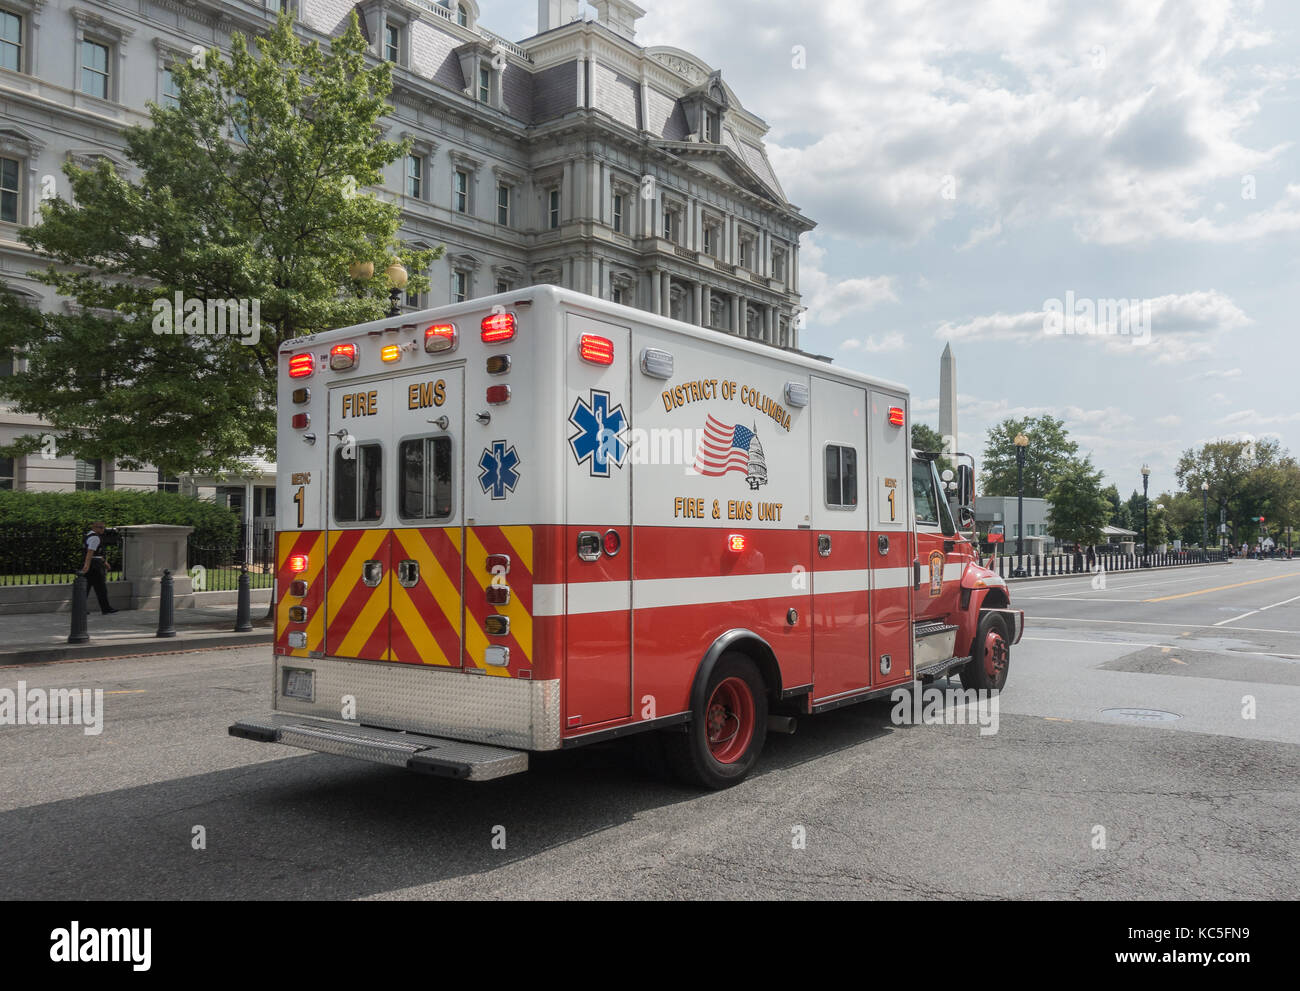 EMS ambulance responding, Washington Monument and Executive Office Building background. EMS is part of fire department - Stock Image